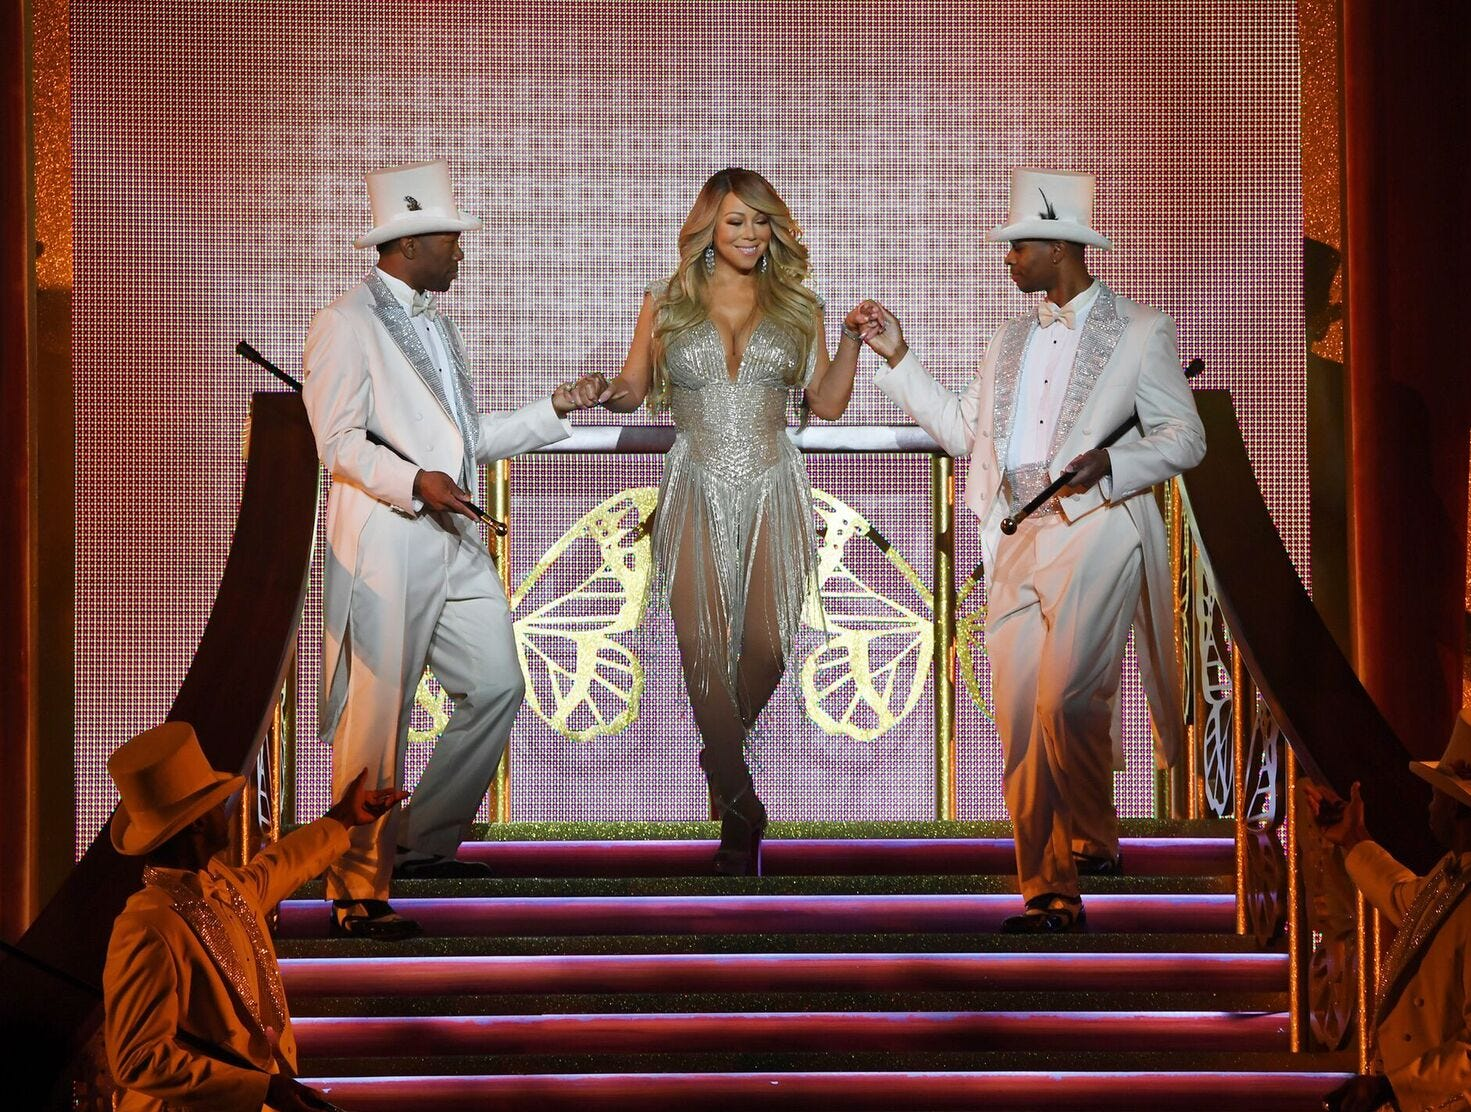 Mariah Carey began her second residency at the Colosseum at Caesars Palace in 2018. Shows continue in 2019.